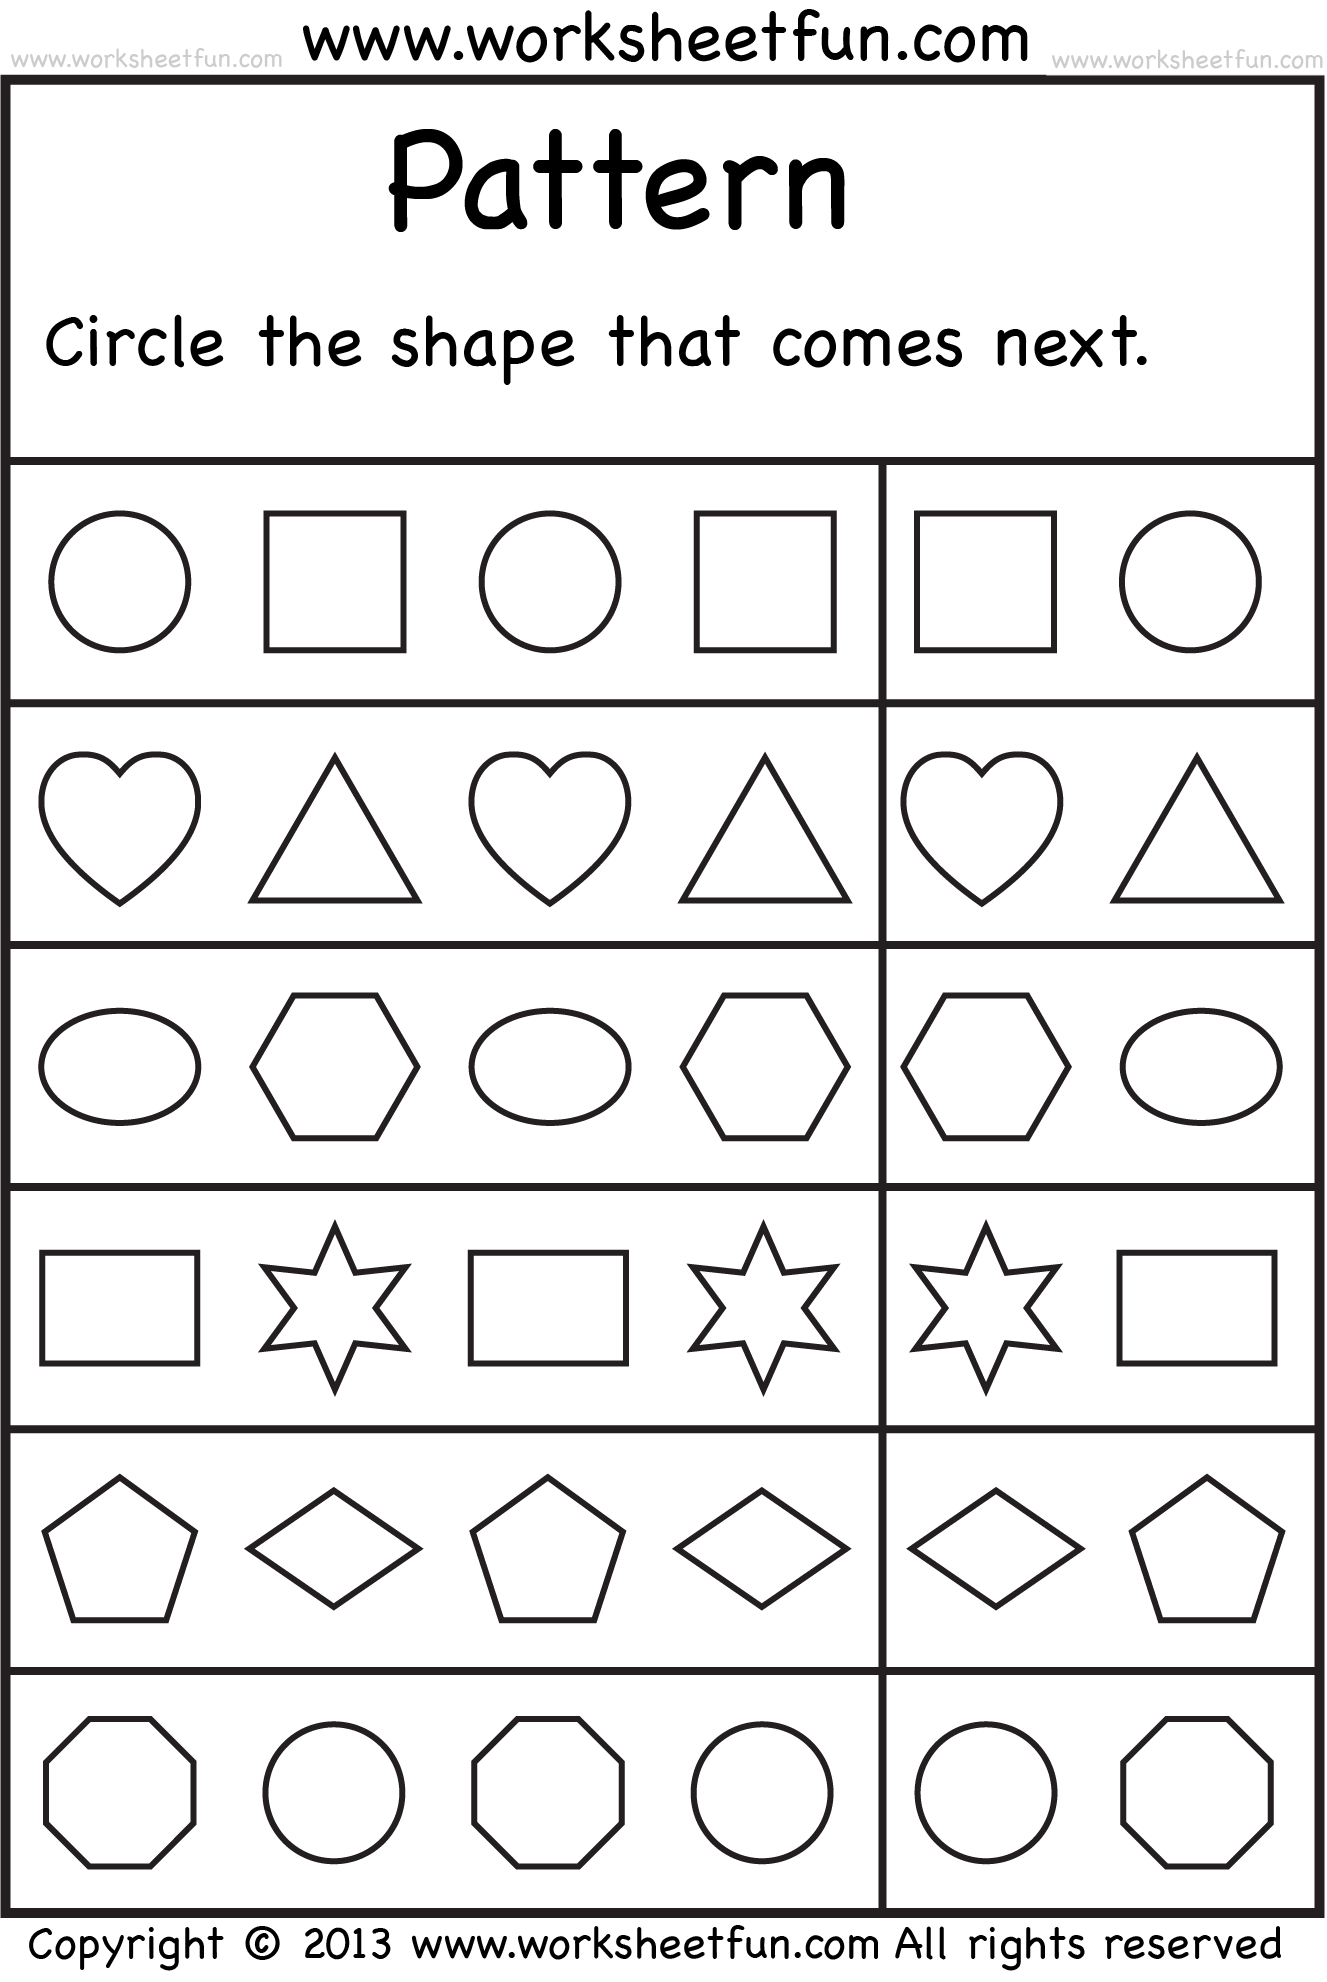 Weirdmailus  Prepossessing  Images About School Worksheets On Pinterest  Number Words  With Hot  Images About School Worksheets On Pinterest  Number Words Alphabet Worksheets And Free Printable Kindergarten Worksheets With Adorable Multiplication Games Worksheets For Third Grade Also Topic And Main Idea Worksheets In Addition Rhyming Worksheets For Second Grade And Grade  Subtraction Worksheets As Well As Shabbat Worksheets Additionally Days And Months Worksheets From Pinterestcom With Weirdmailus  Hot  Images About School Worksheets On Pinterest  Number Words  With Adorable  Images About School Worksheets On Pinterest  Number Words Alphabet Worksheets And Free Printable Kindergarten Worksheets And Prepossessing Multiplication Games Worksheets For Third Grade Also Topic And Main Idea Worksheets In Addition Rhyming Worksheets For Second Grade From Pinterestcom